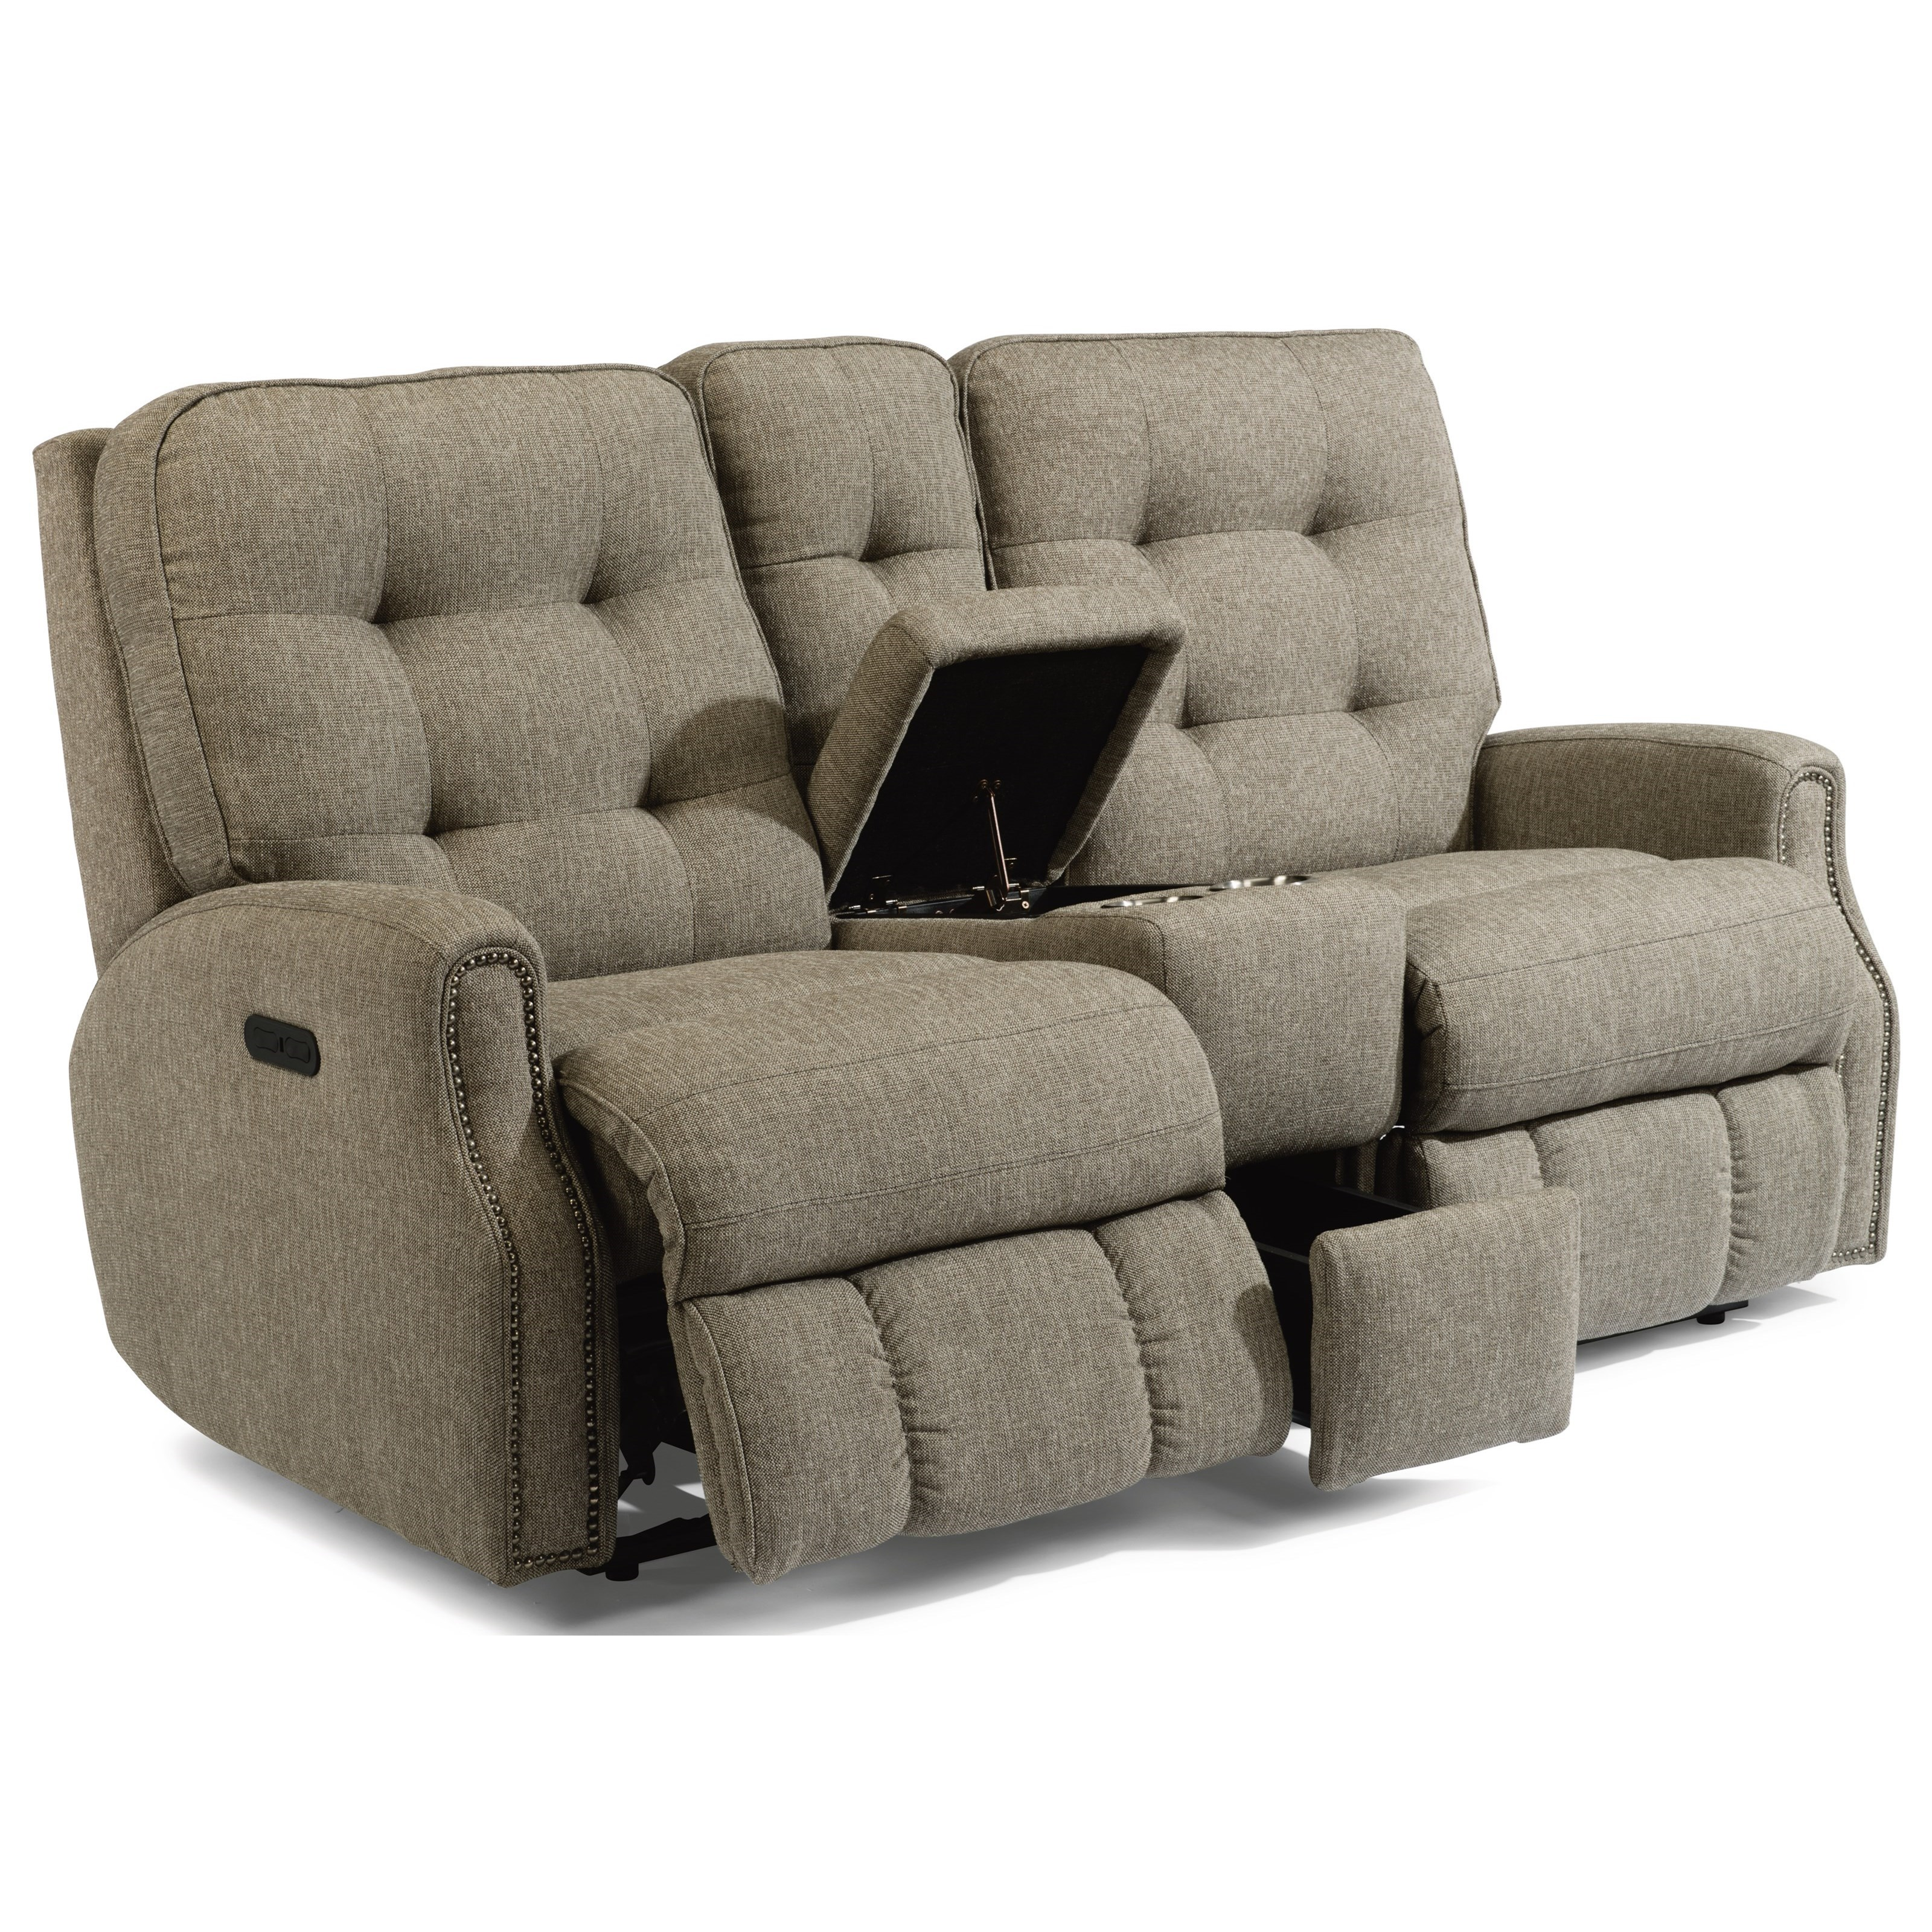 Awesome Devon Power Reclining Loveseat With Console Squirreltailoven Fun Painted Chair Ideas Images Squirreltailovenorg